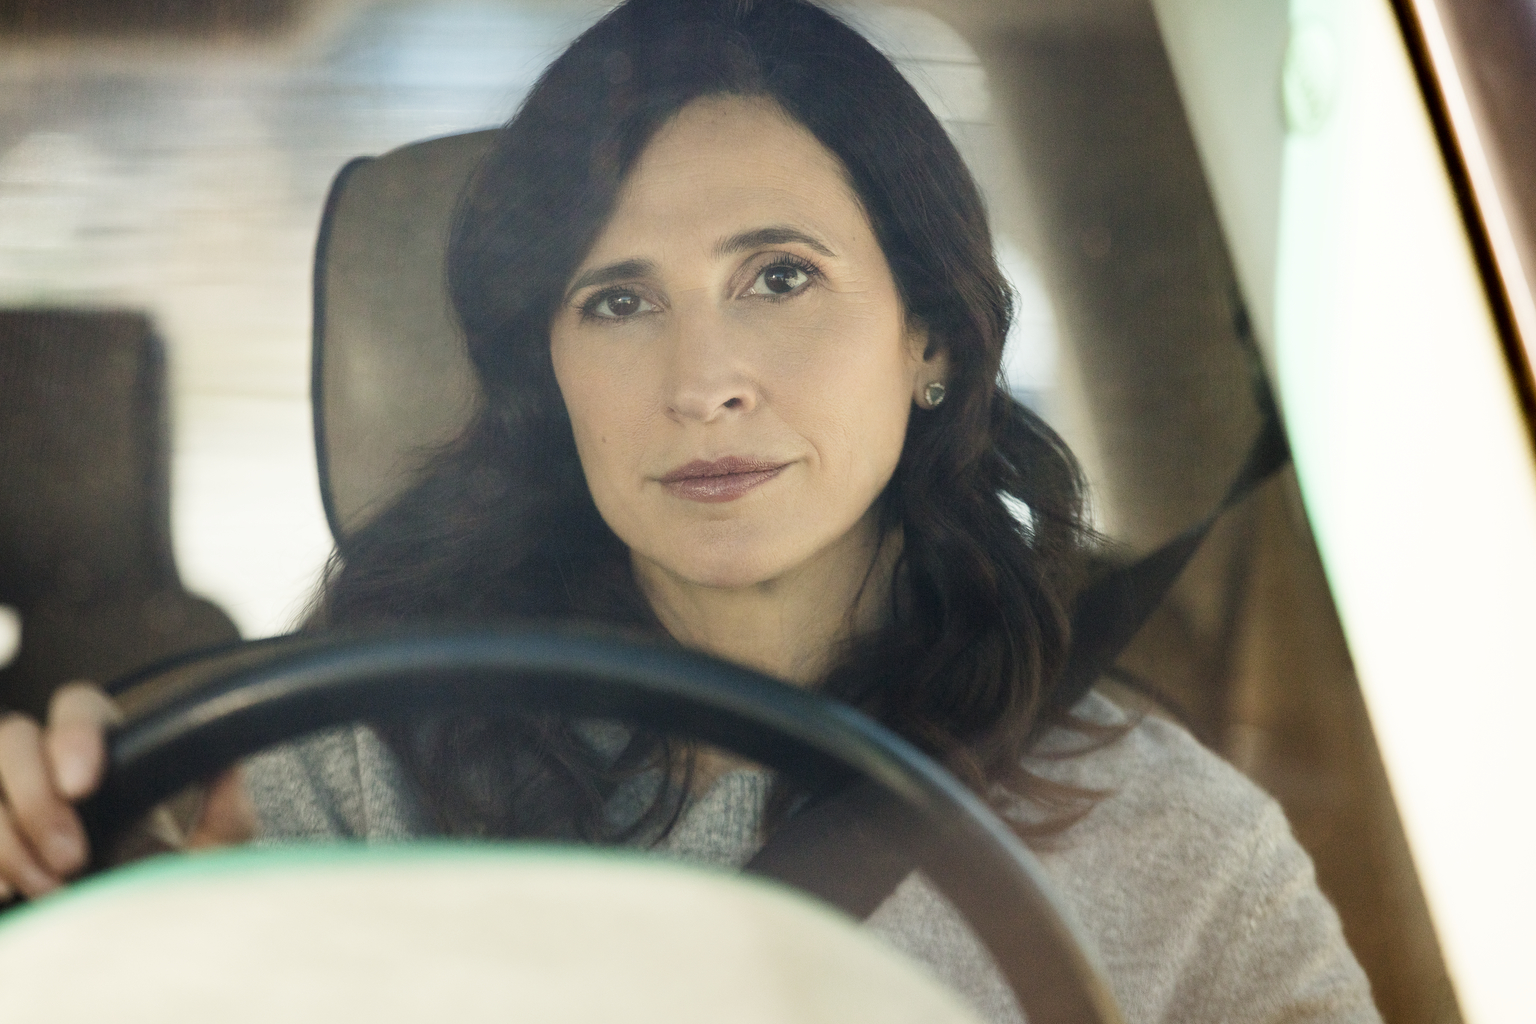 "CASUAL -- ""Polytropos"" - Episode 406 - Following a day of misguided decisions, Alex, Valerie, and Laura begin their overdue pilgrimage to DawnÕs. But when their road trip takes an accidental turn, each faces an obstacle that tests their willpower in different ways. Valarie Meyers (Michaela Watkins) shown. (Photo by: Greg Lewis/Hulu)"